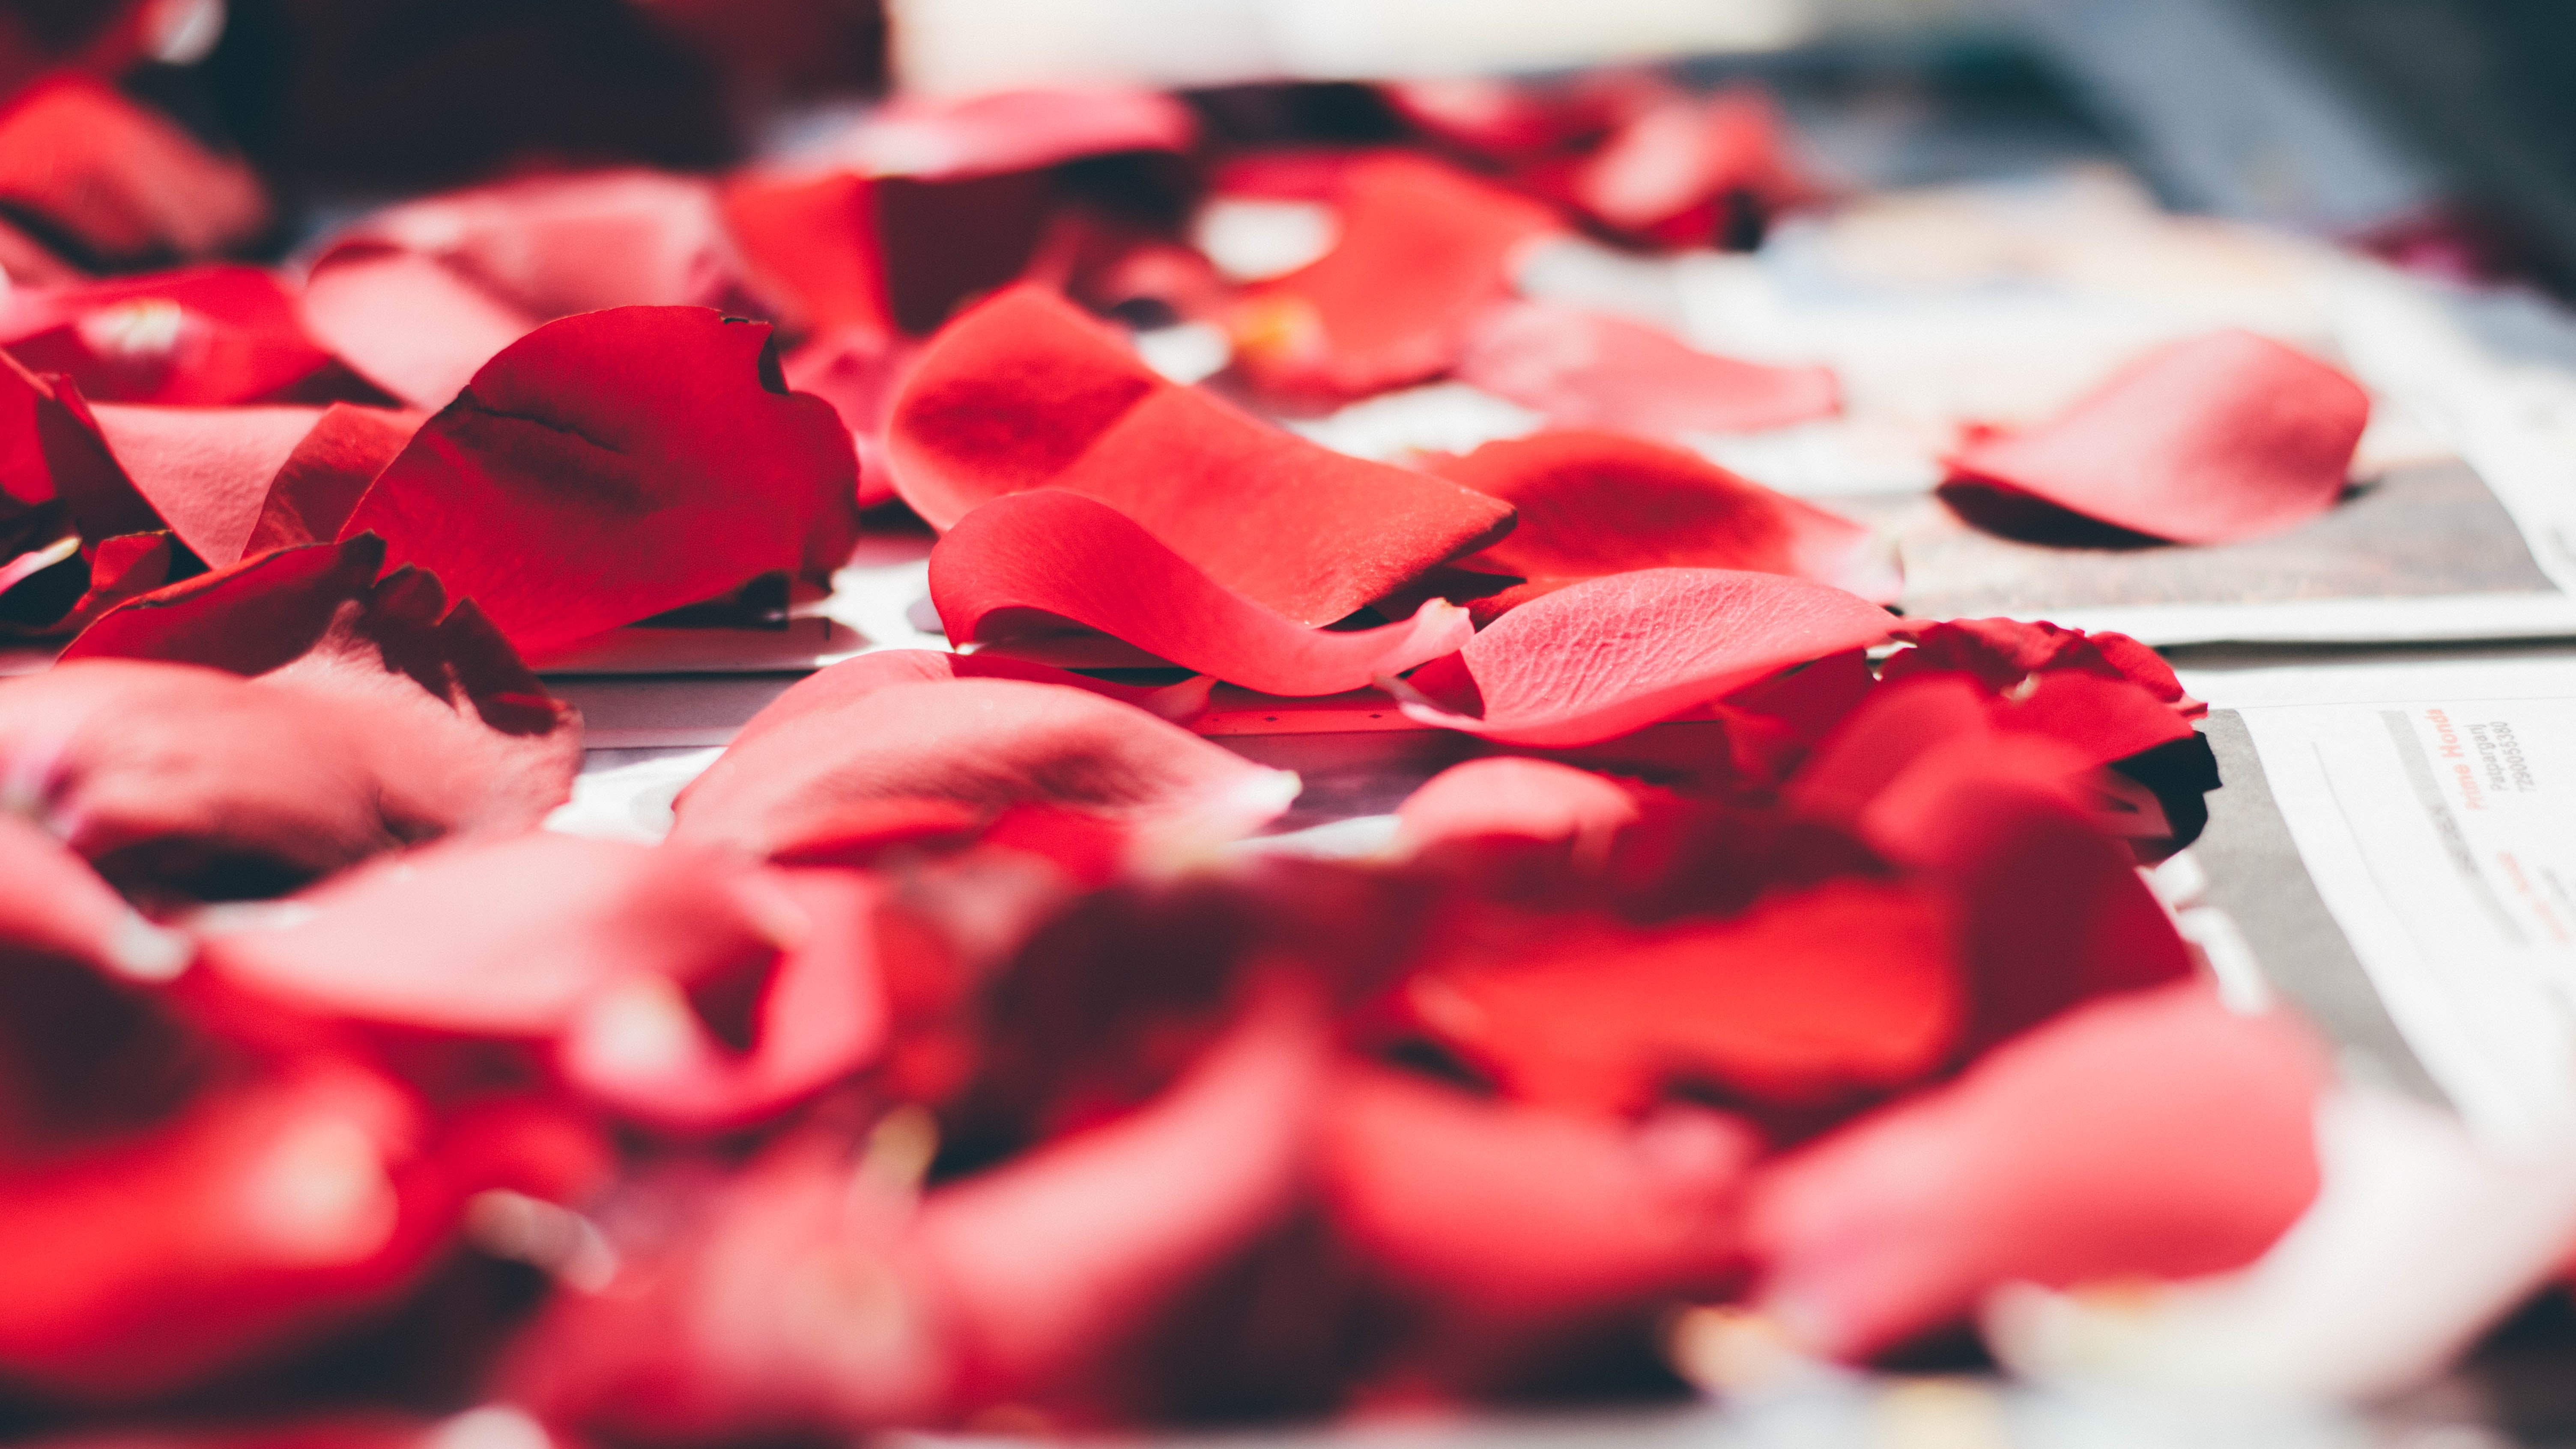 rose petals on top of white printed paper